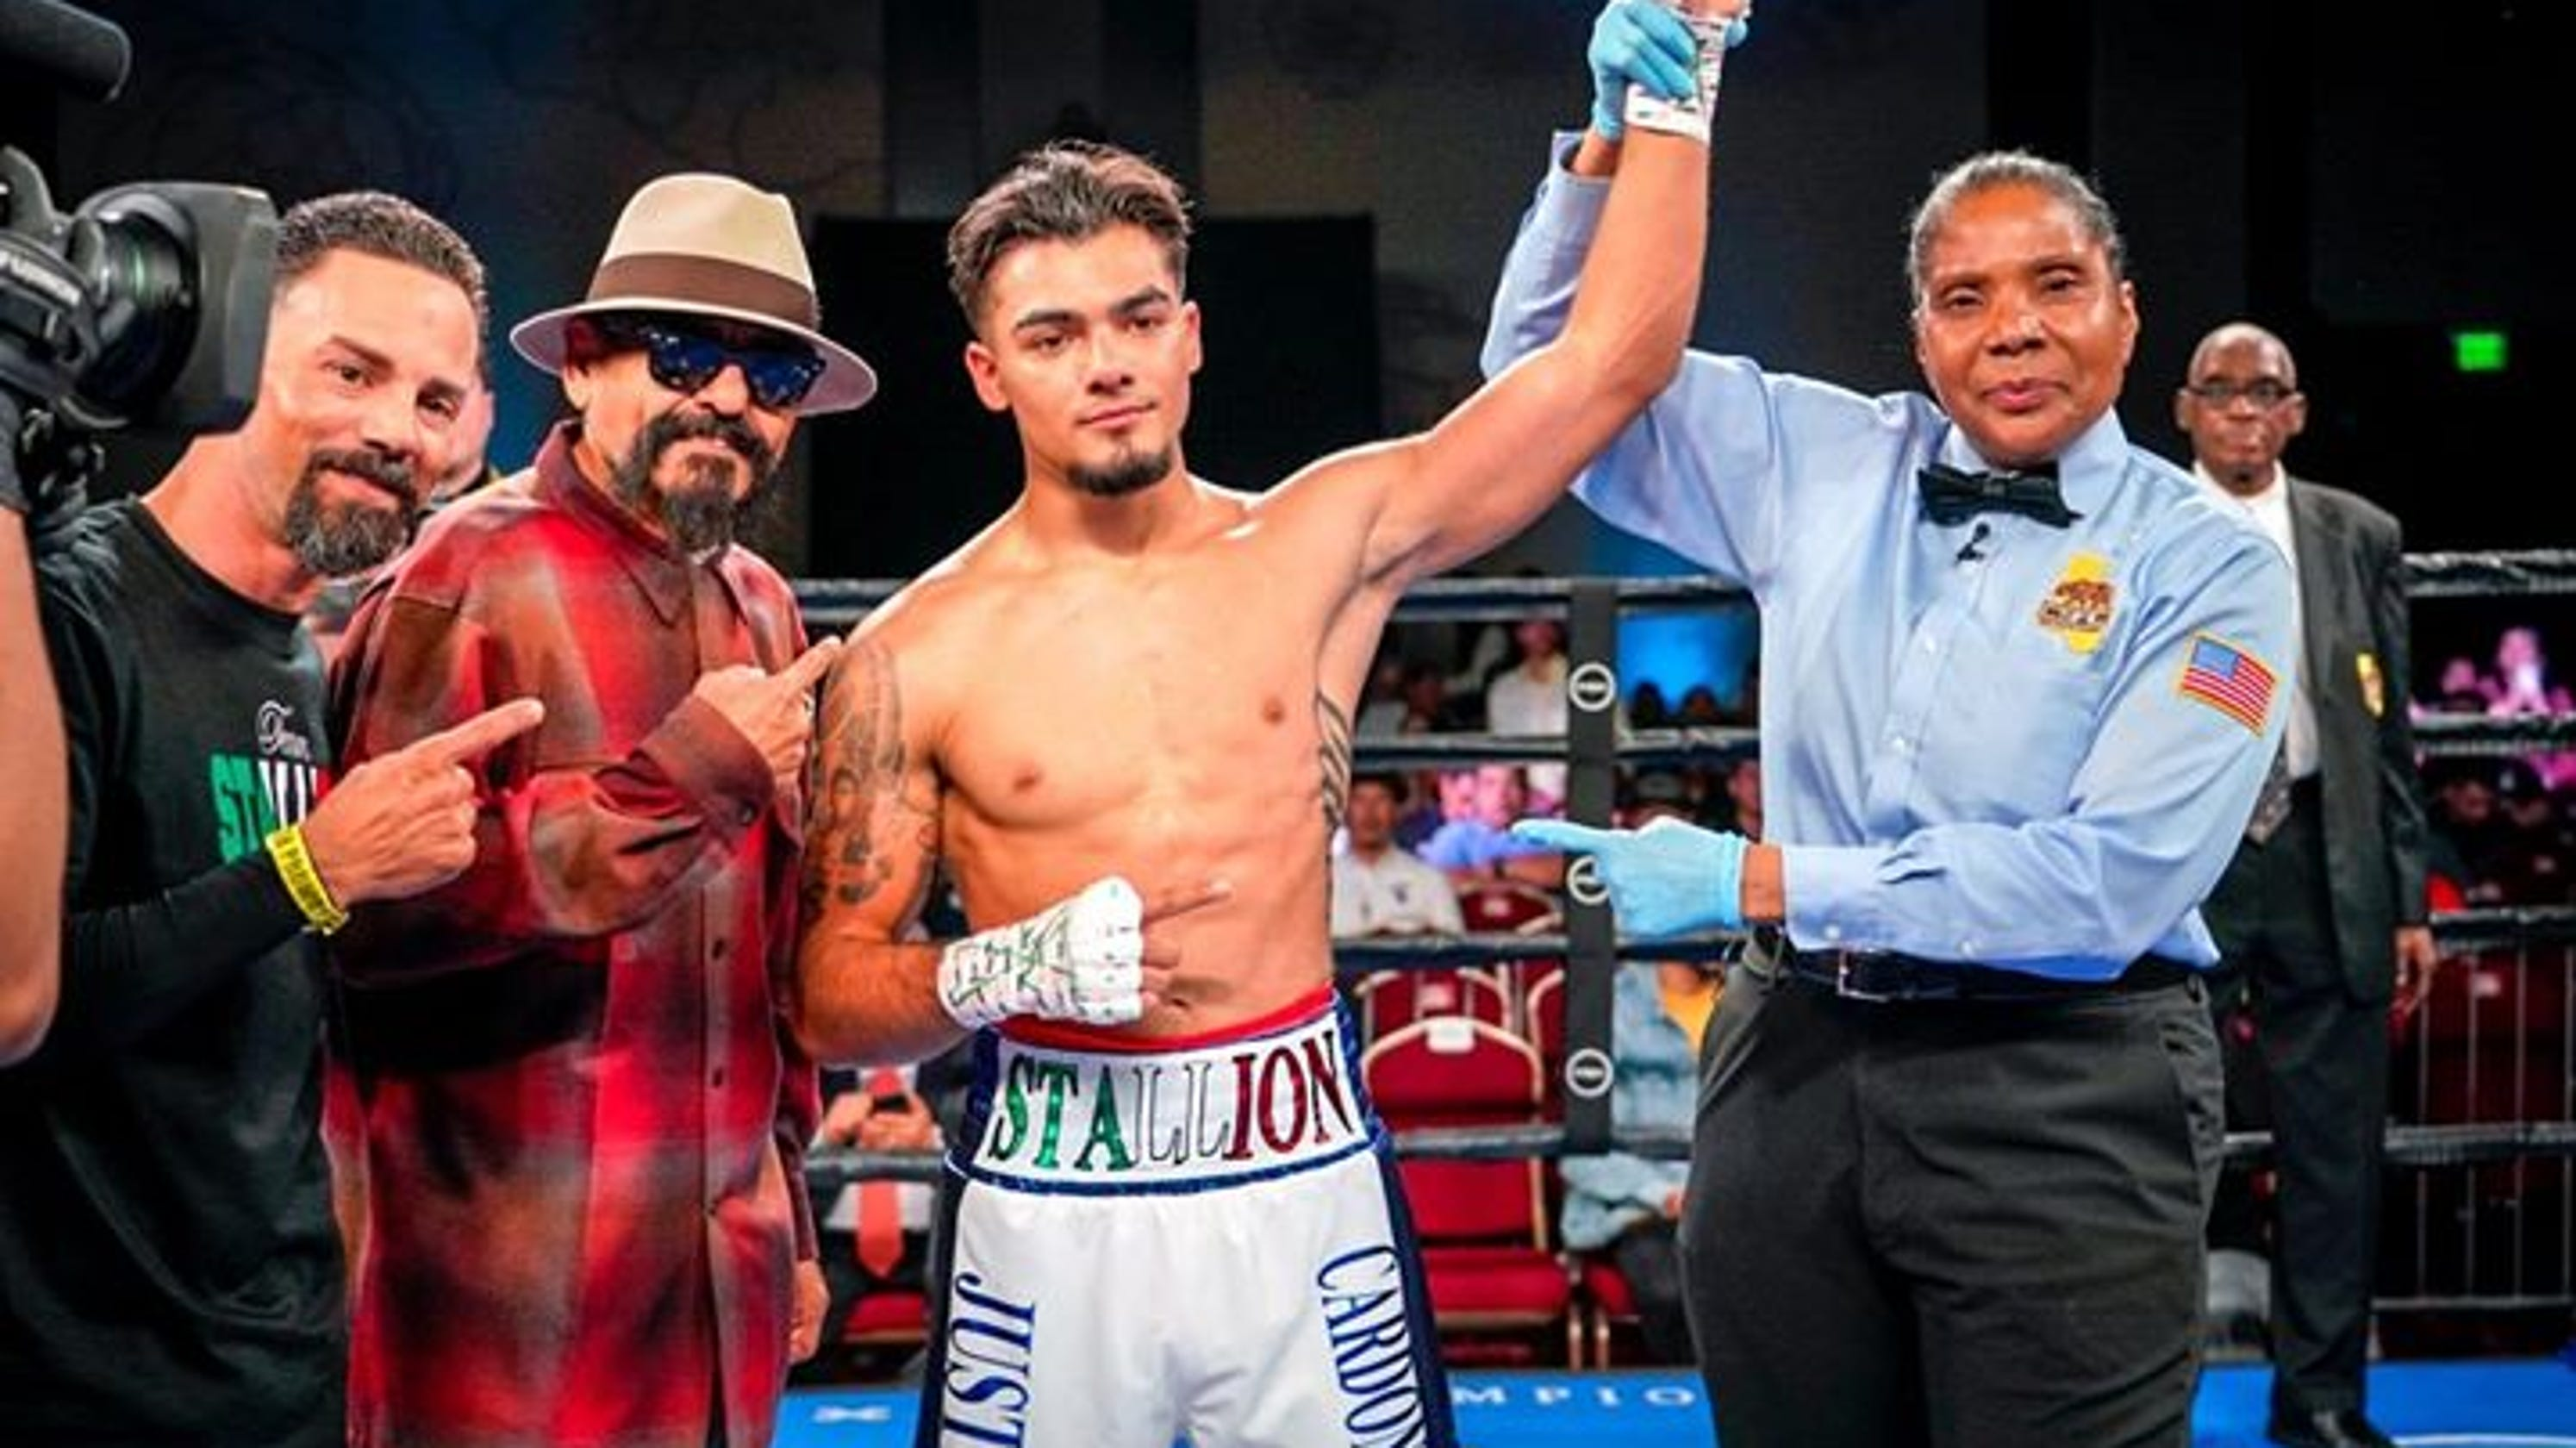 East Salinas Native Cardona Wins Boxing Match By First